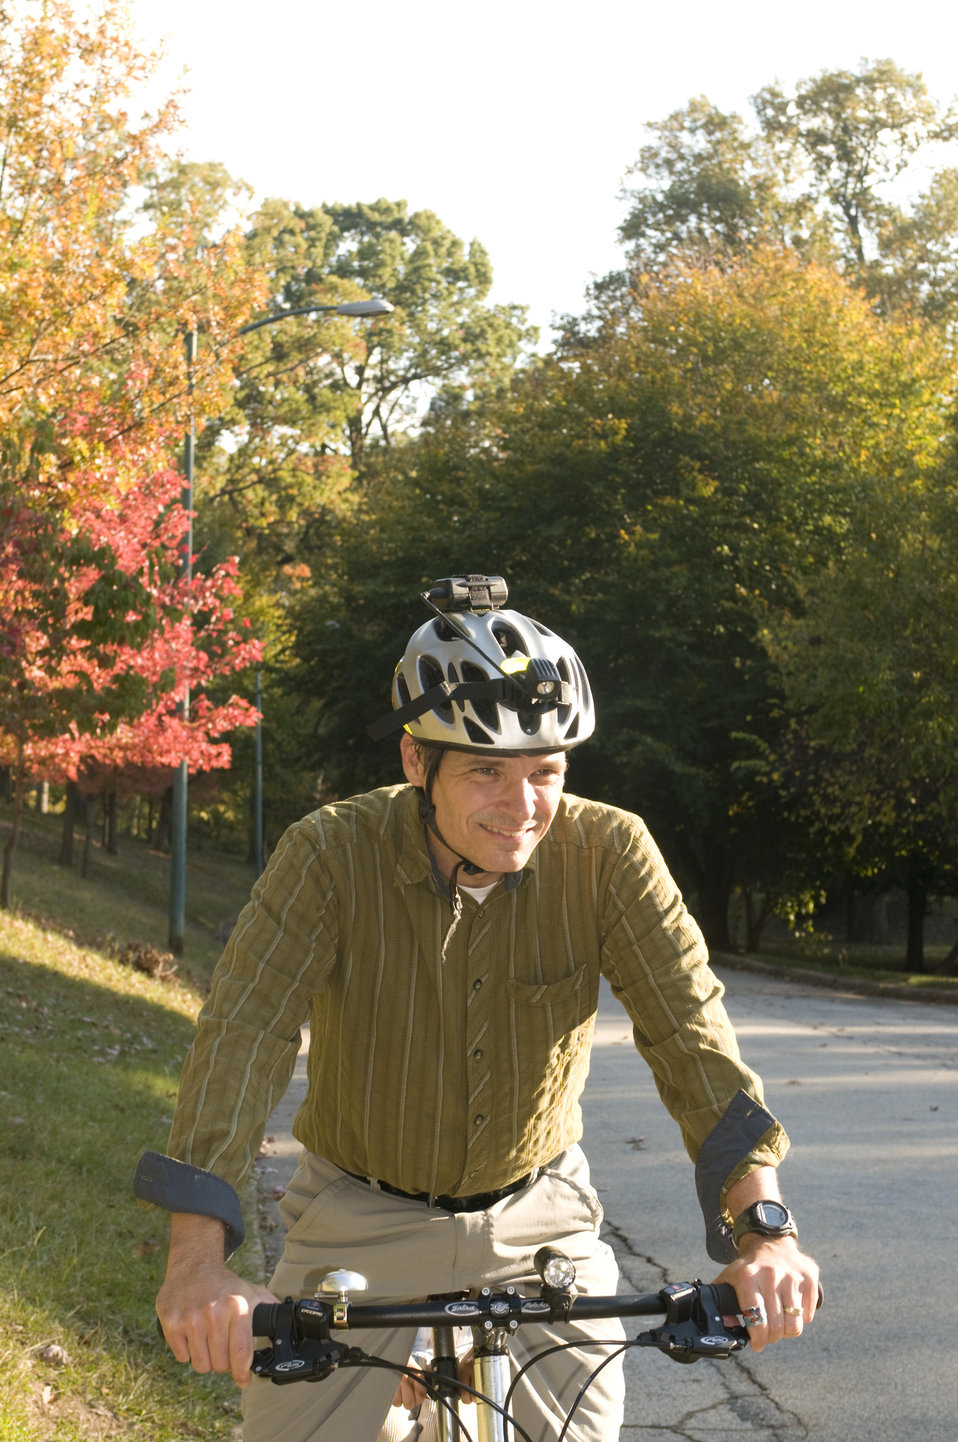 This male bicyclist was spending some time on a beautiful Georgian day, getting some exercise by bicycling on a quite, bike-friendly roadway